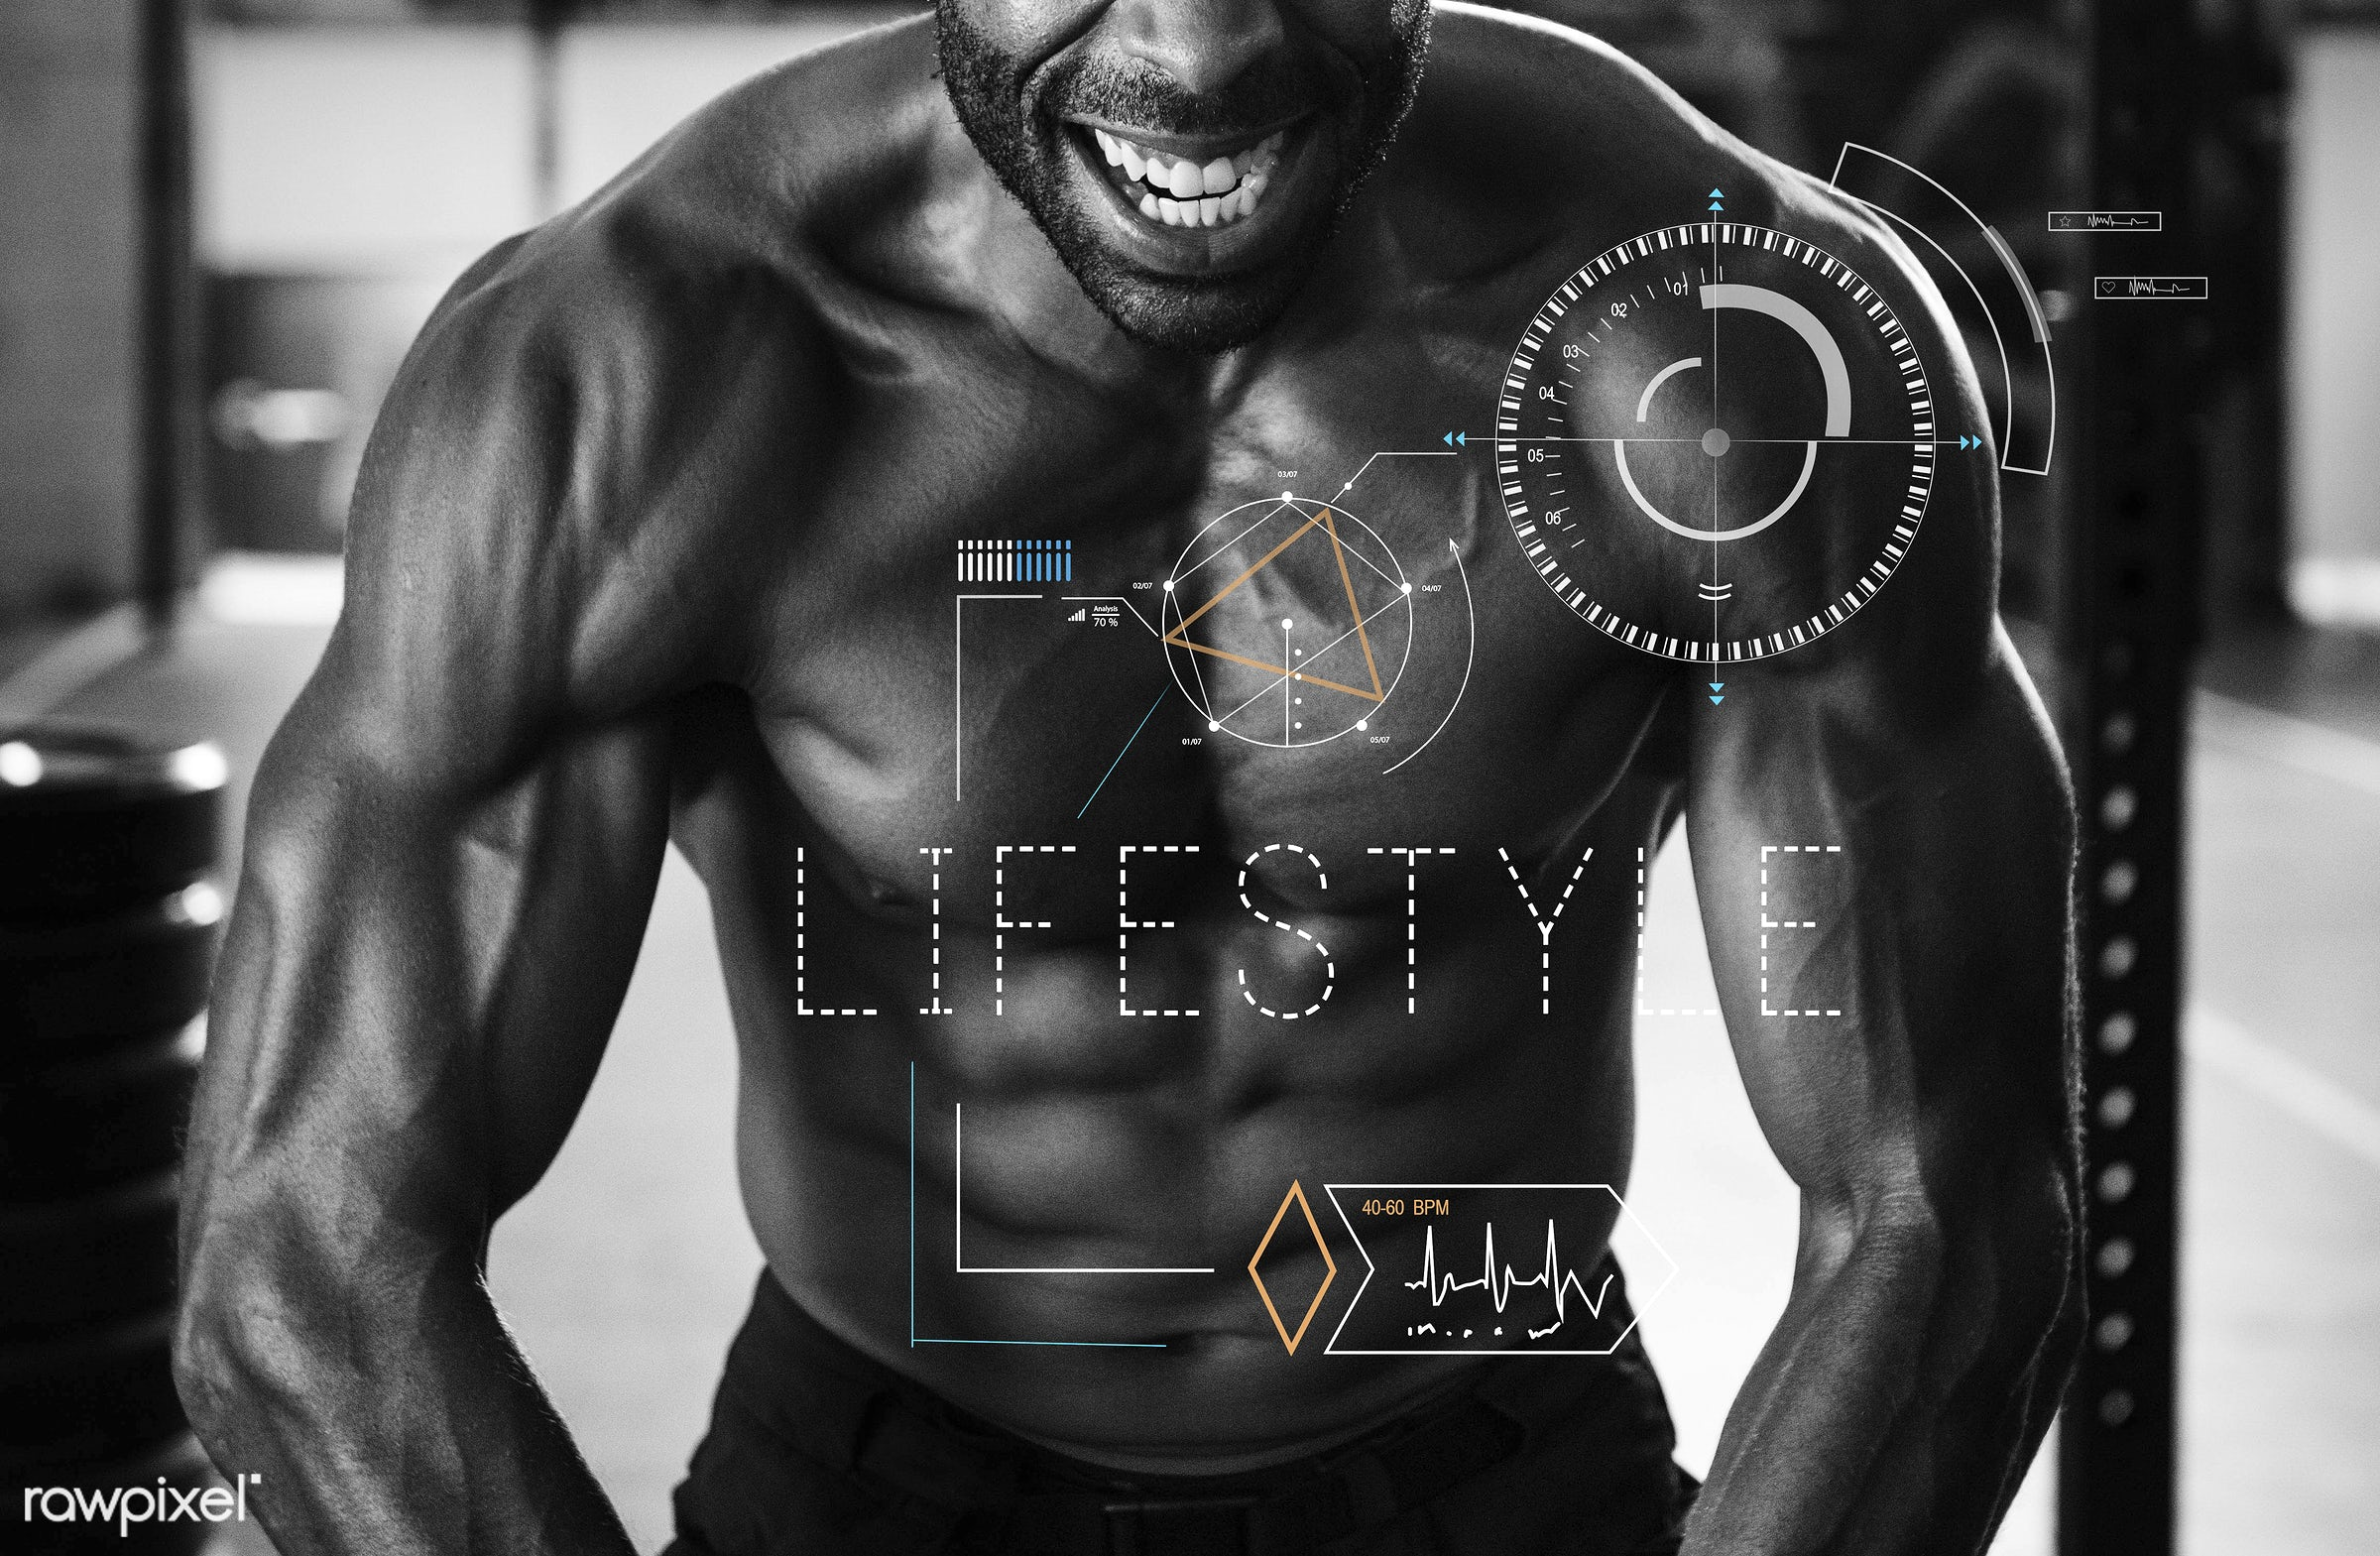 health, gym, word, abs, adult, african descent, arms, biceps, body, bodybuilder, condition, crosshair, daily, energy,...